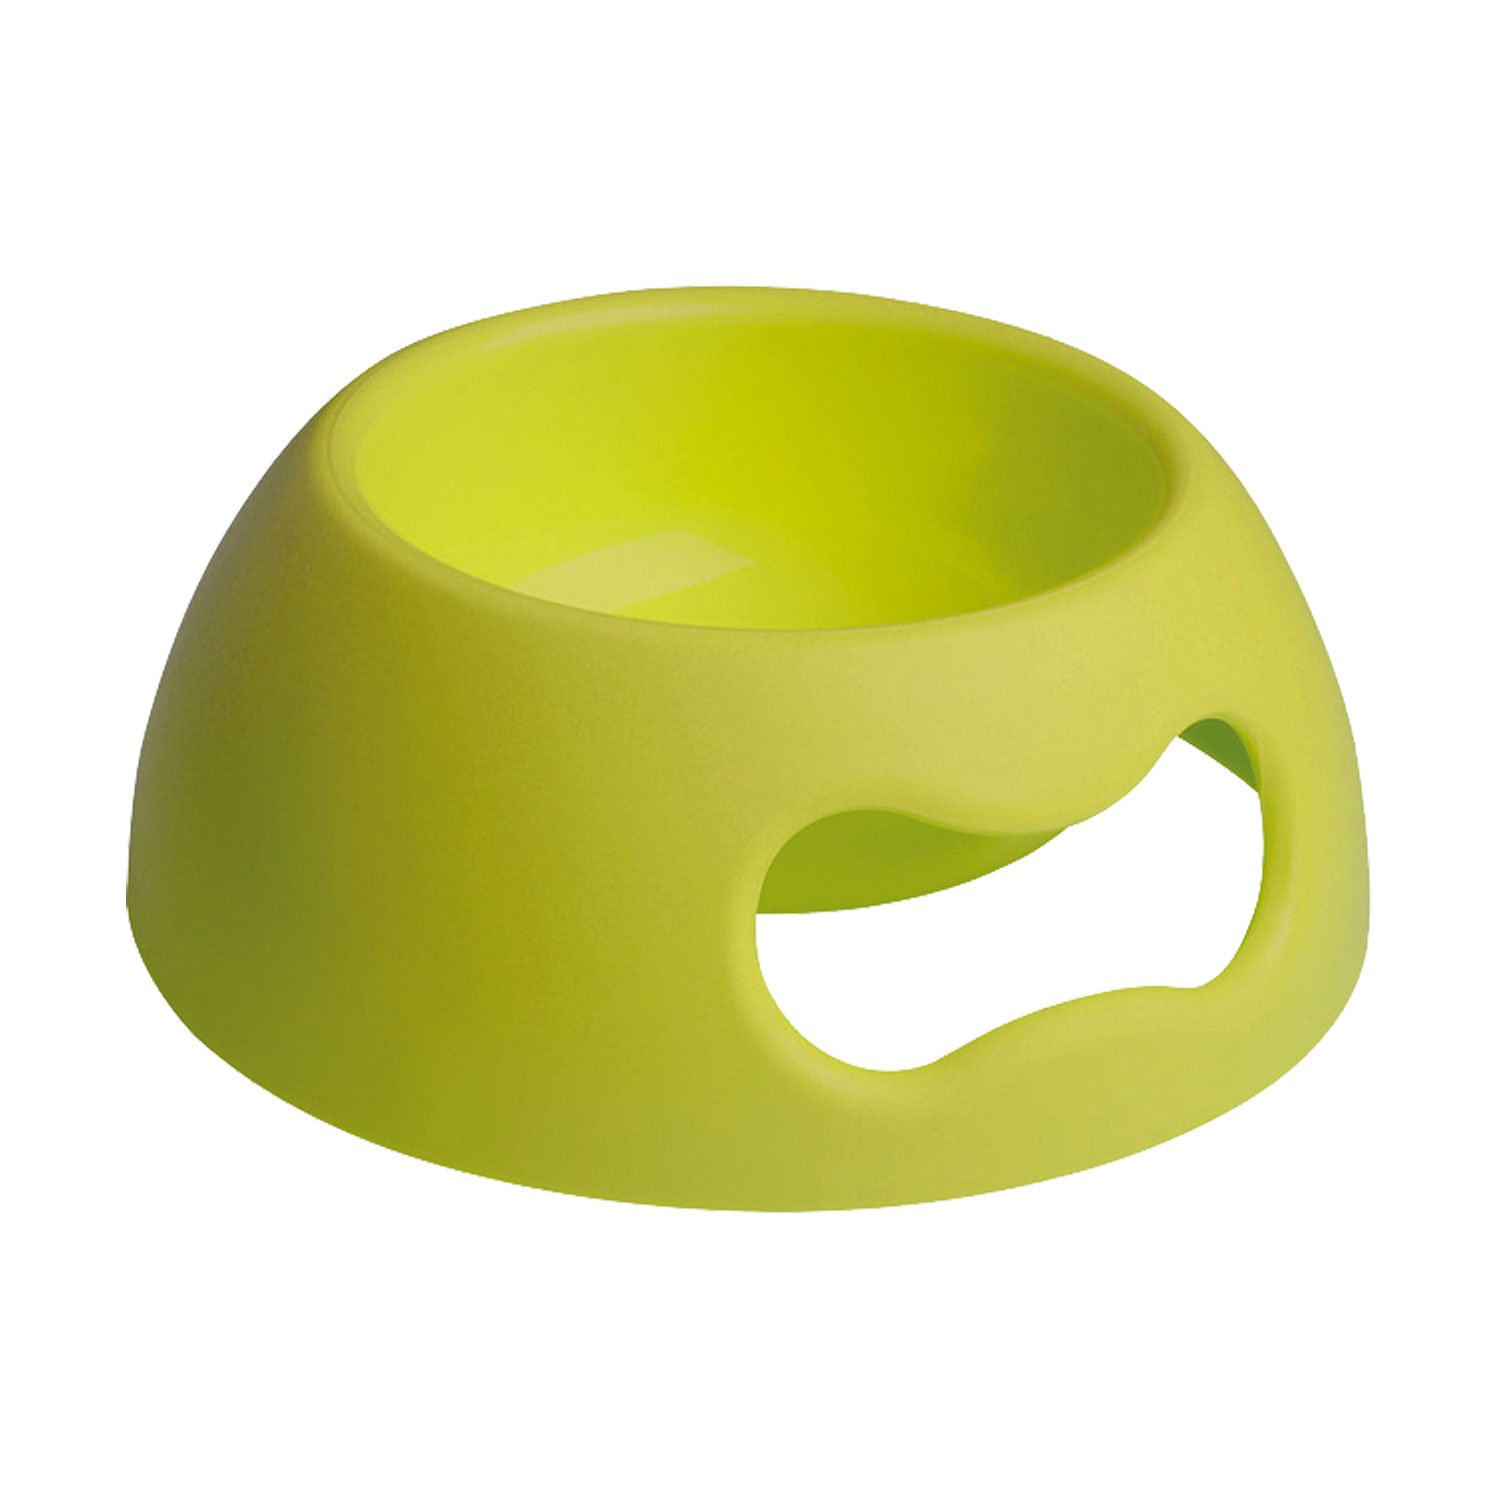 Petego United Pets Pappy Pet Food and Water Bowl, Green, Holds 36 Ounces